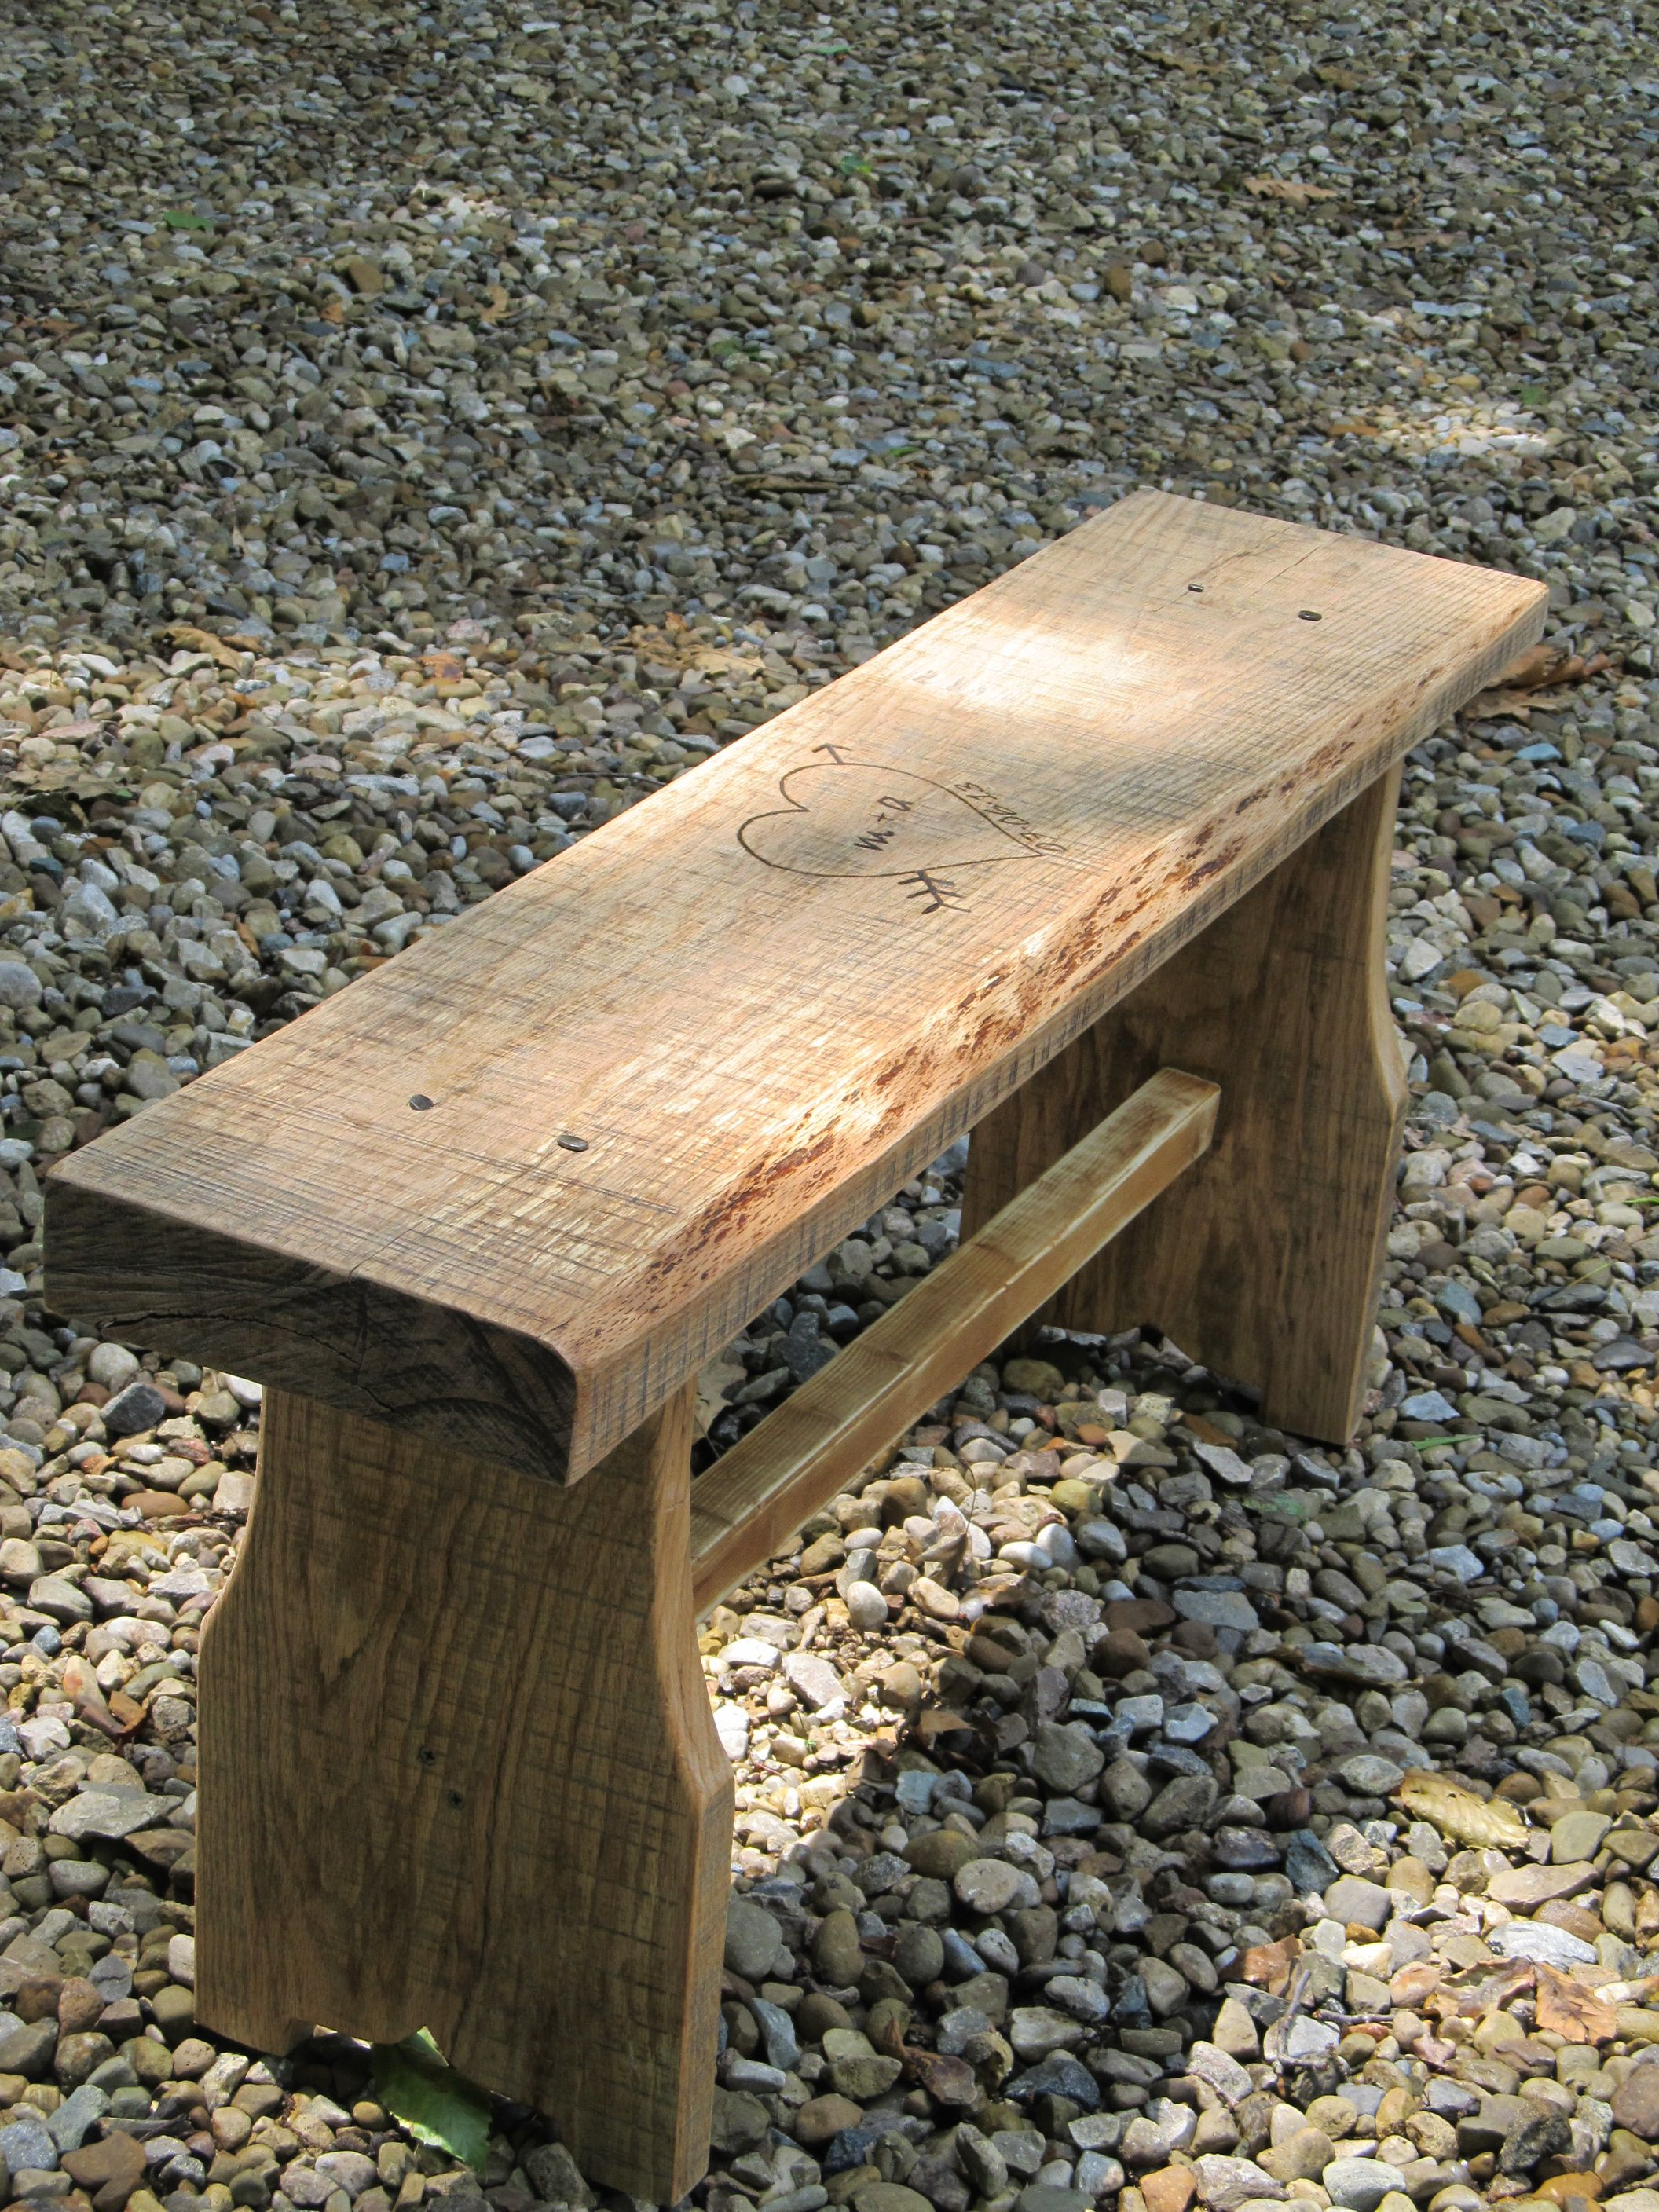 Build yourself a One Board Bench with an 8' 2x10, or mabey